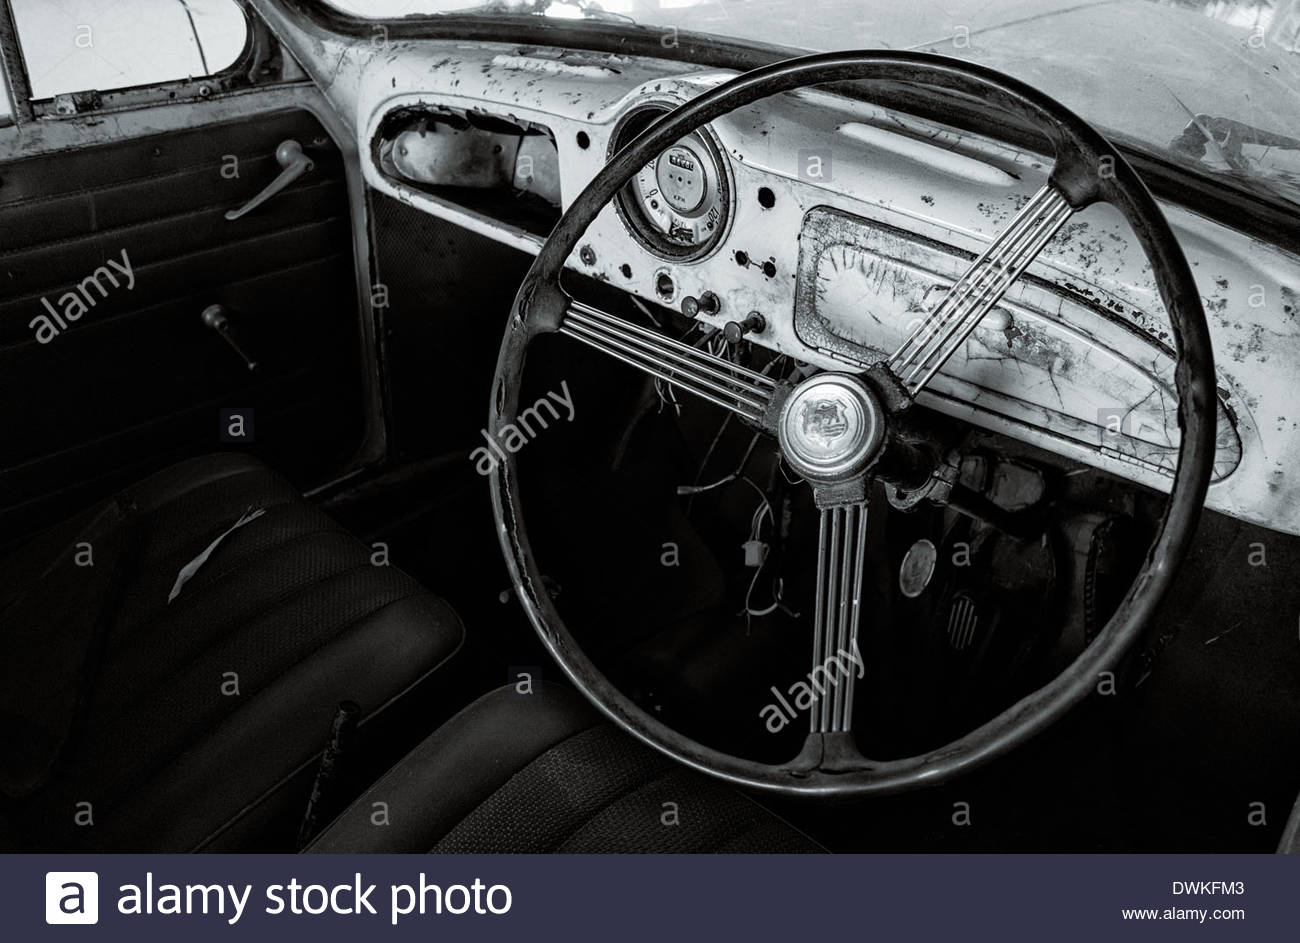 Interior View Of A Vintage Mercedes Benz In The Temple Grounds Thai Wat Chaiyaphum Province Thailand